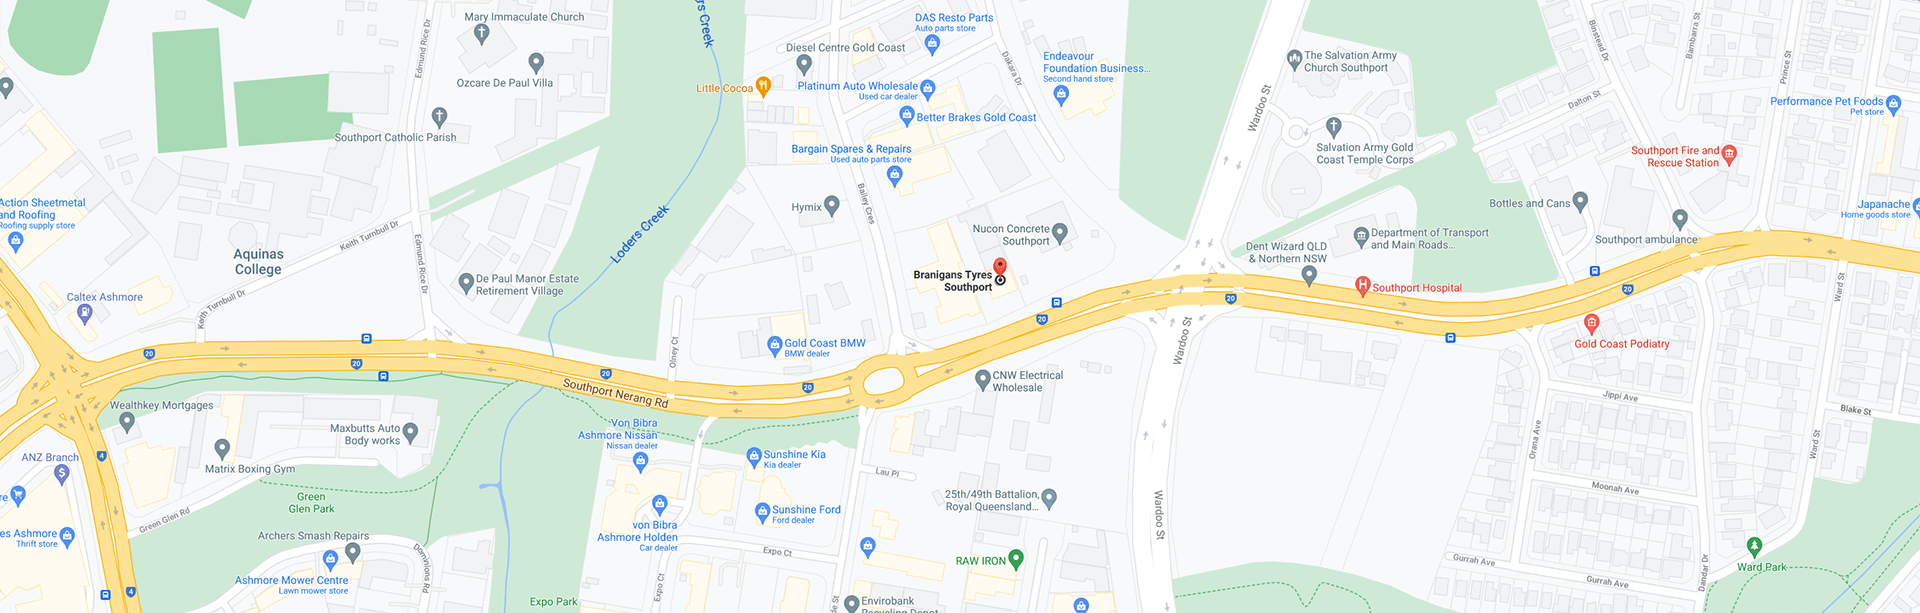 Map to the Branigans Southport tyre shop in the Gold Coast.